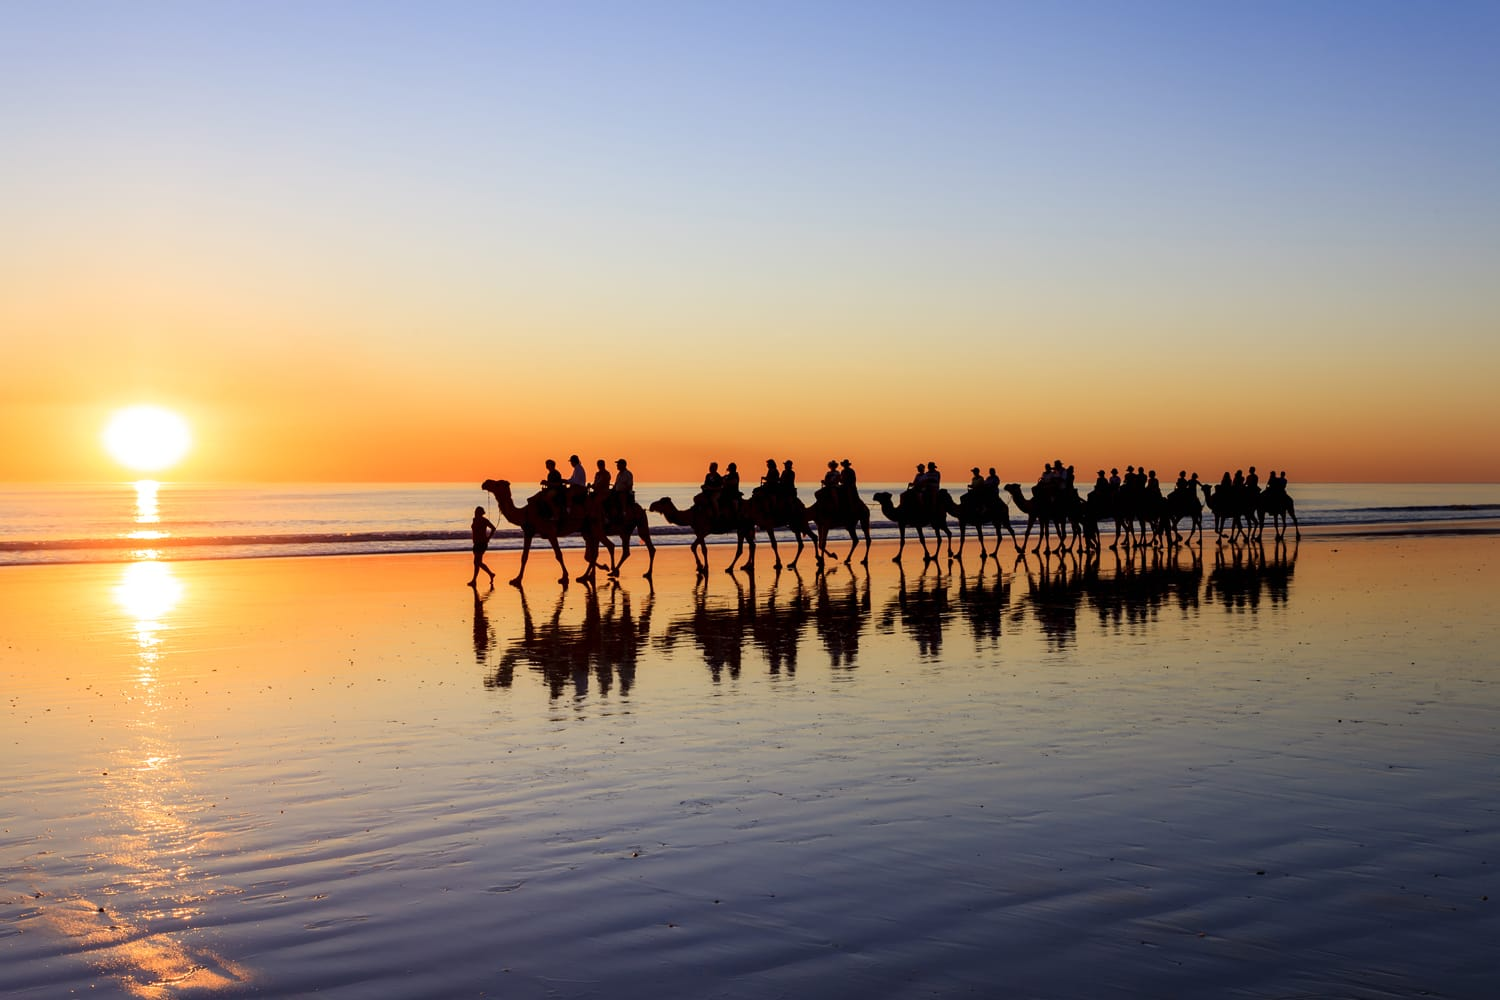 Camels on beach at sunset, Broome, Western Australia